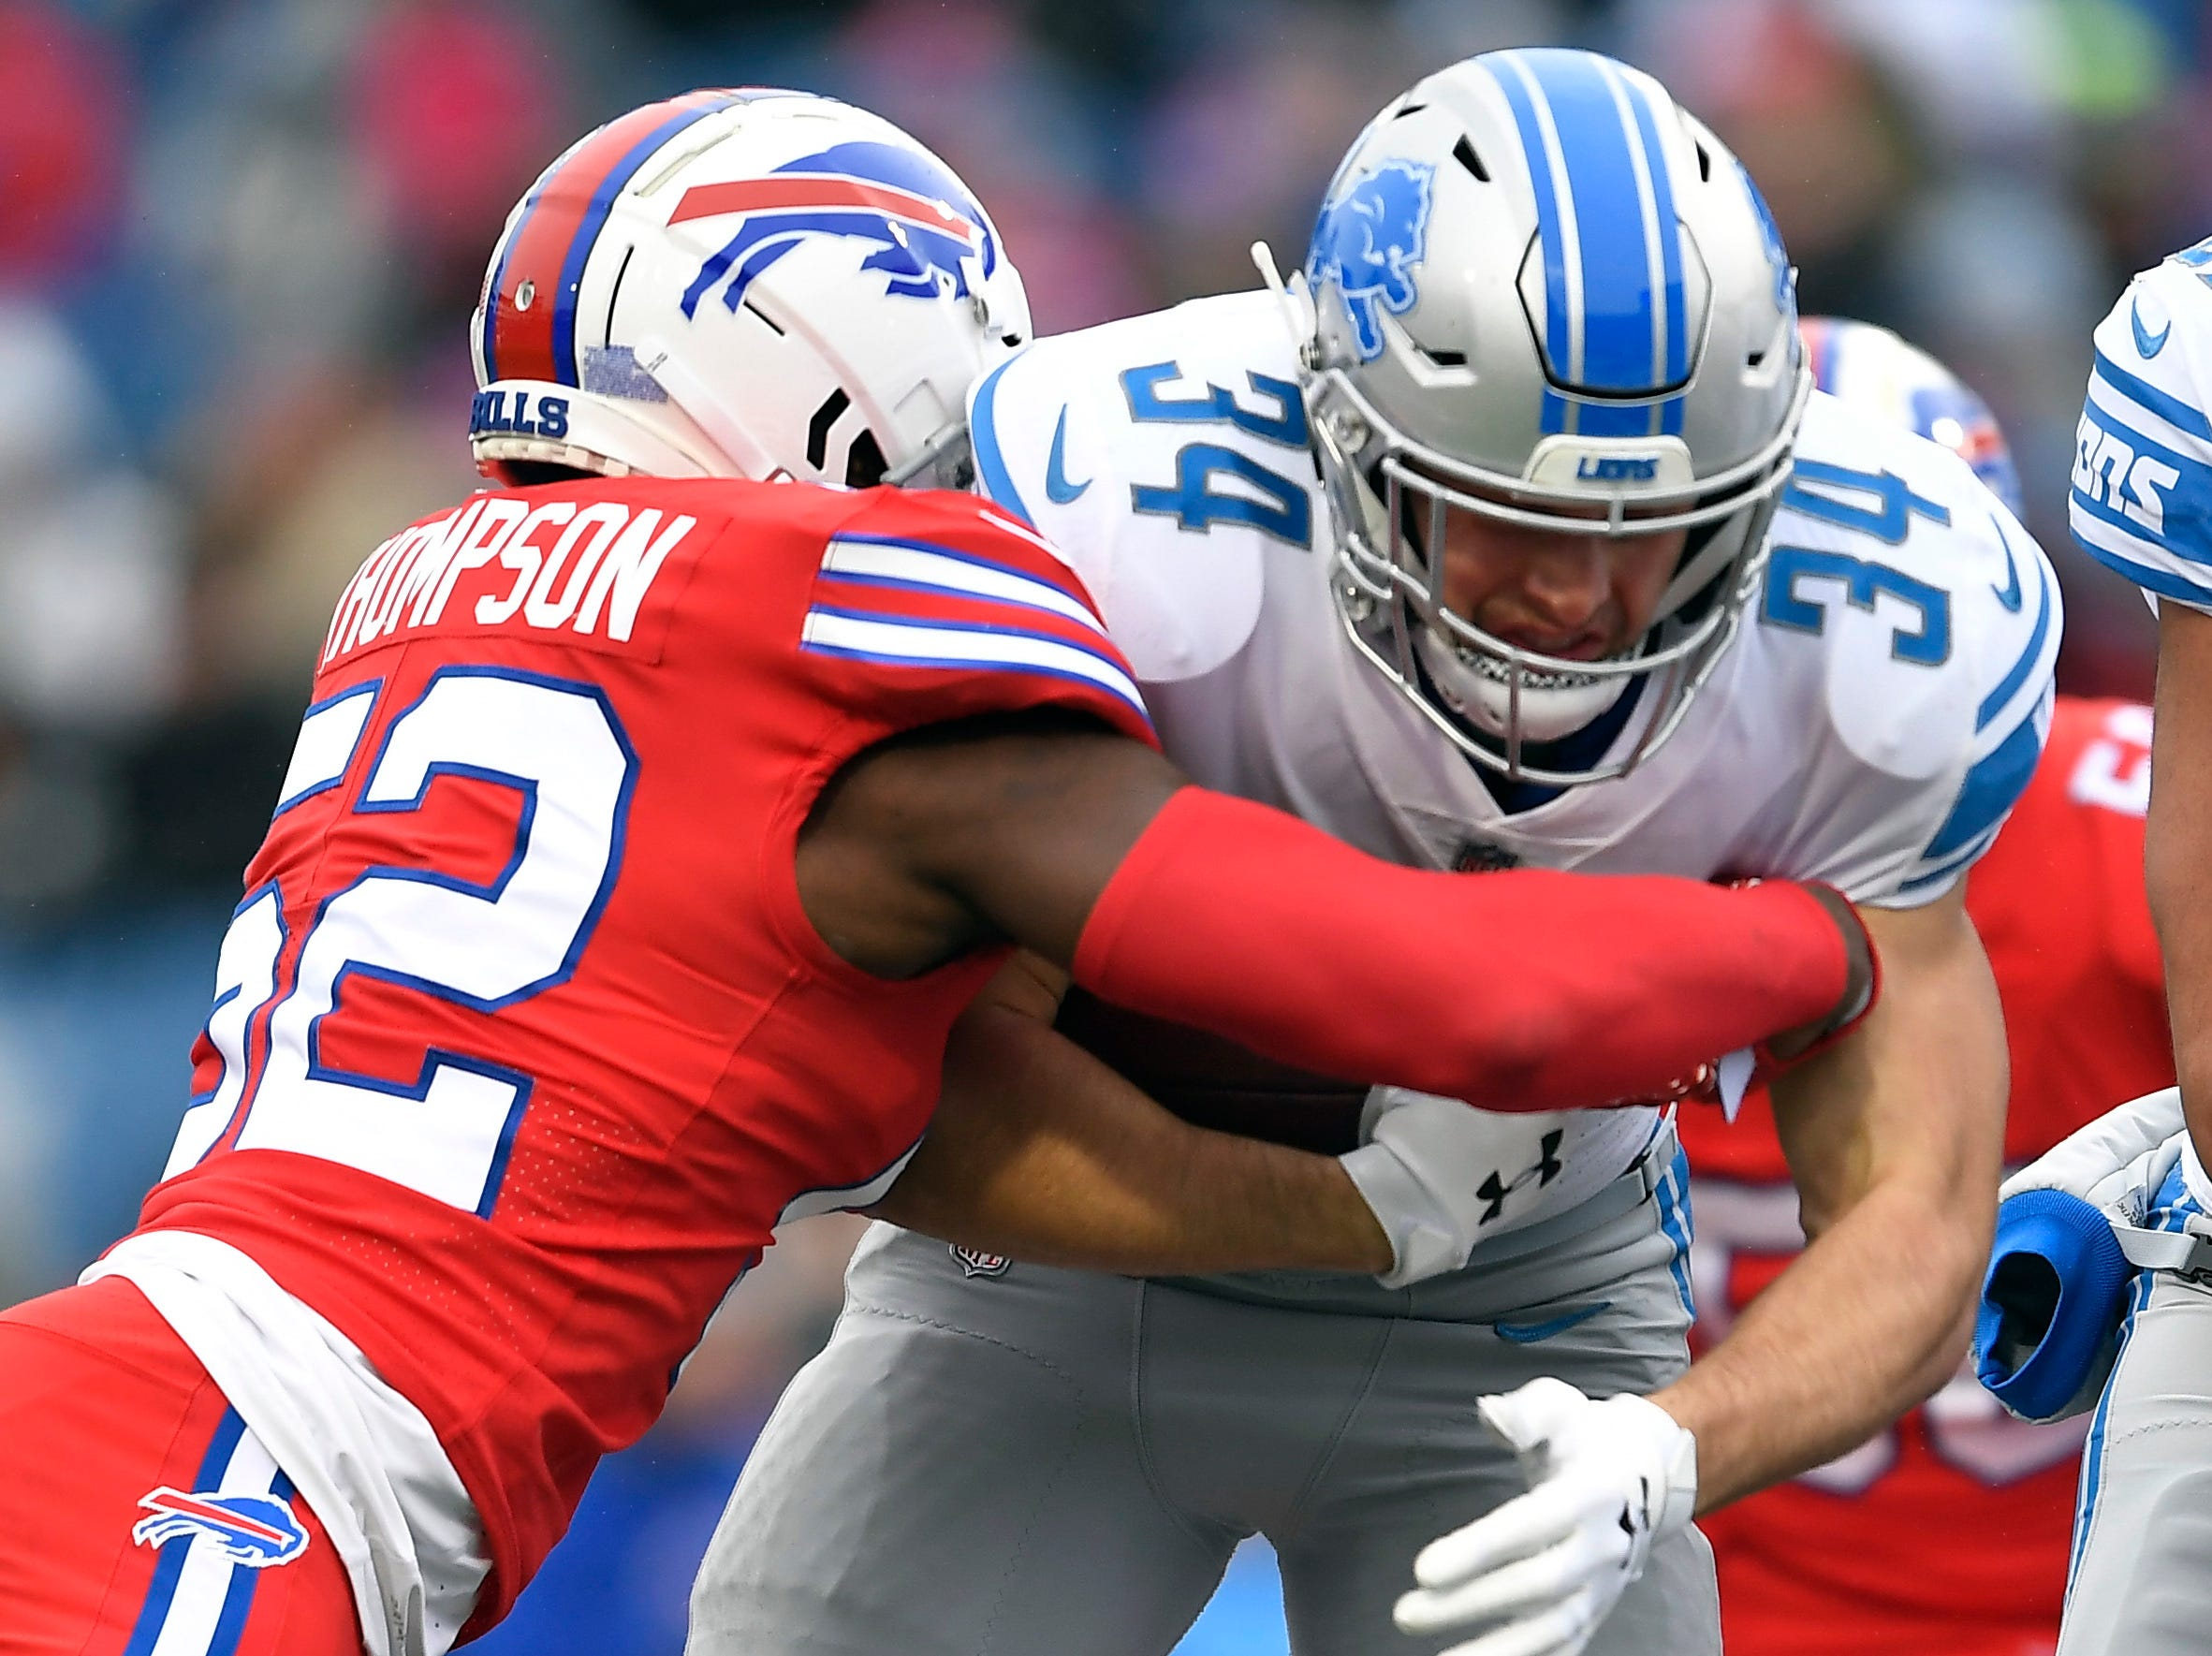 Detroit Lions running back Zach Zenner (34) rushes against Buffalo Bills linebacker Corey Thompson (52) during the first half.